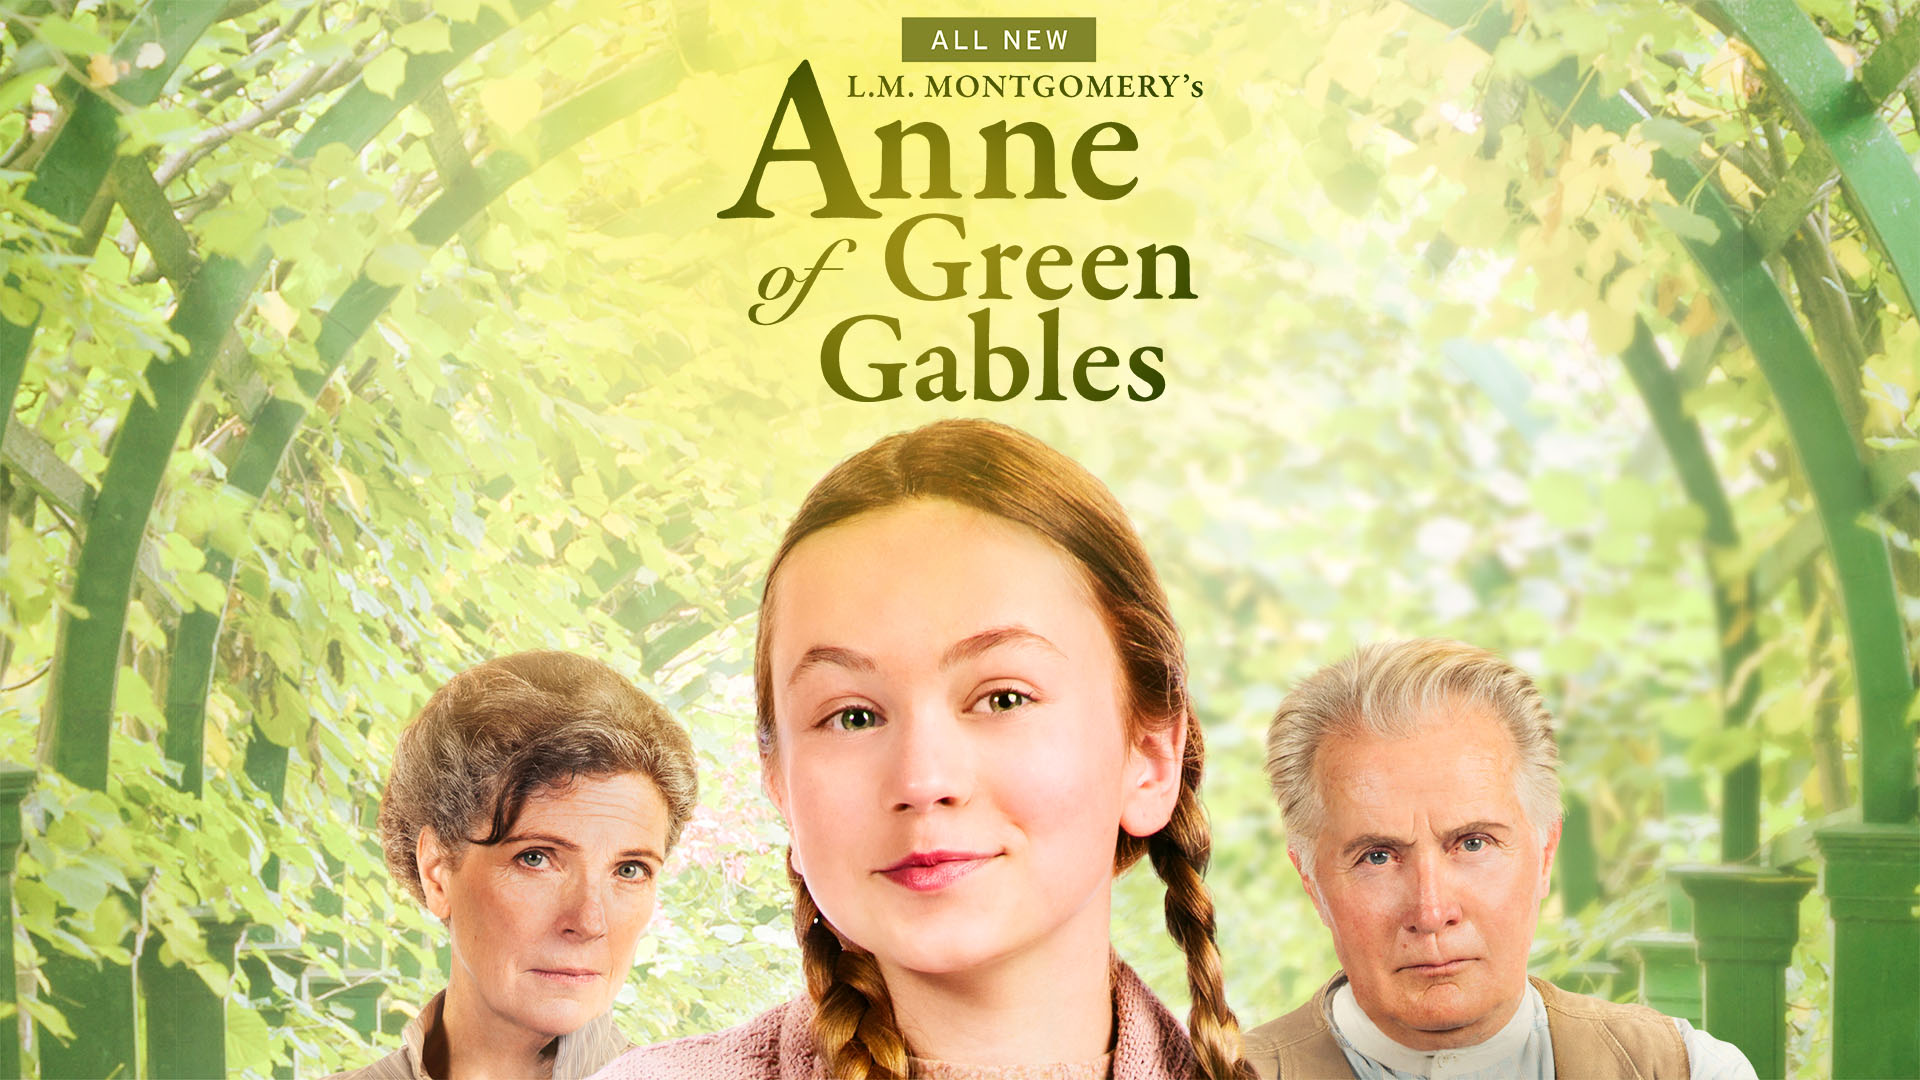 anne of green gables personality and Welcome to r/greengables, the subreddit dedicated to the anne of green gables series, written by lucy maud montgomerythe series chronicle the life of anne shirley, an imaginative orphan as she grows and matures.